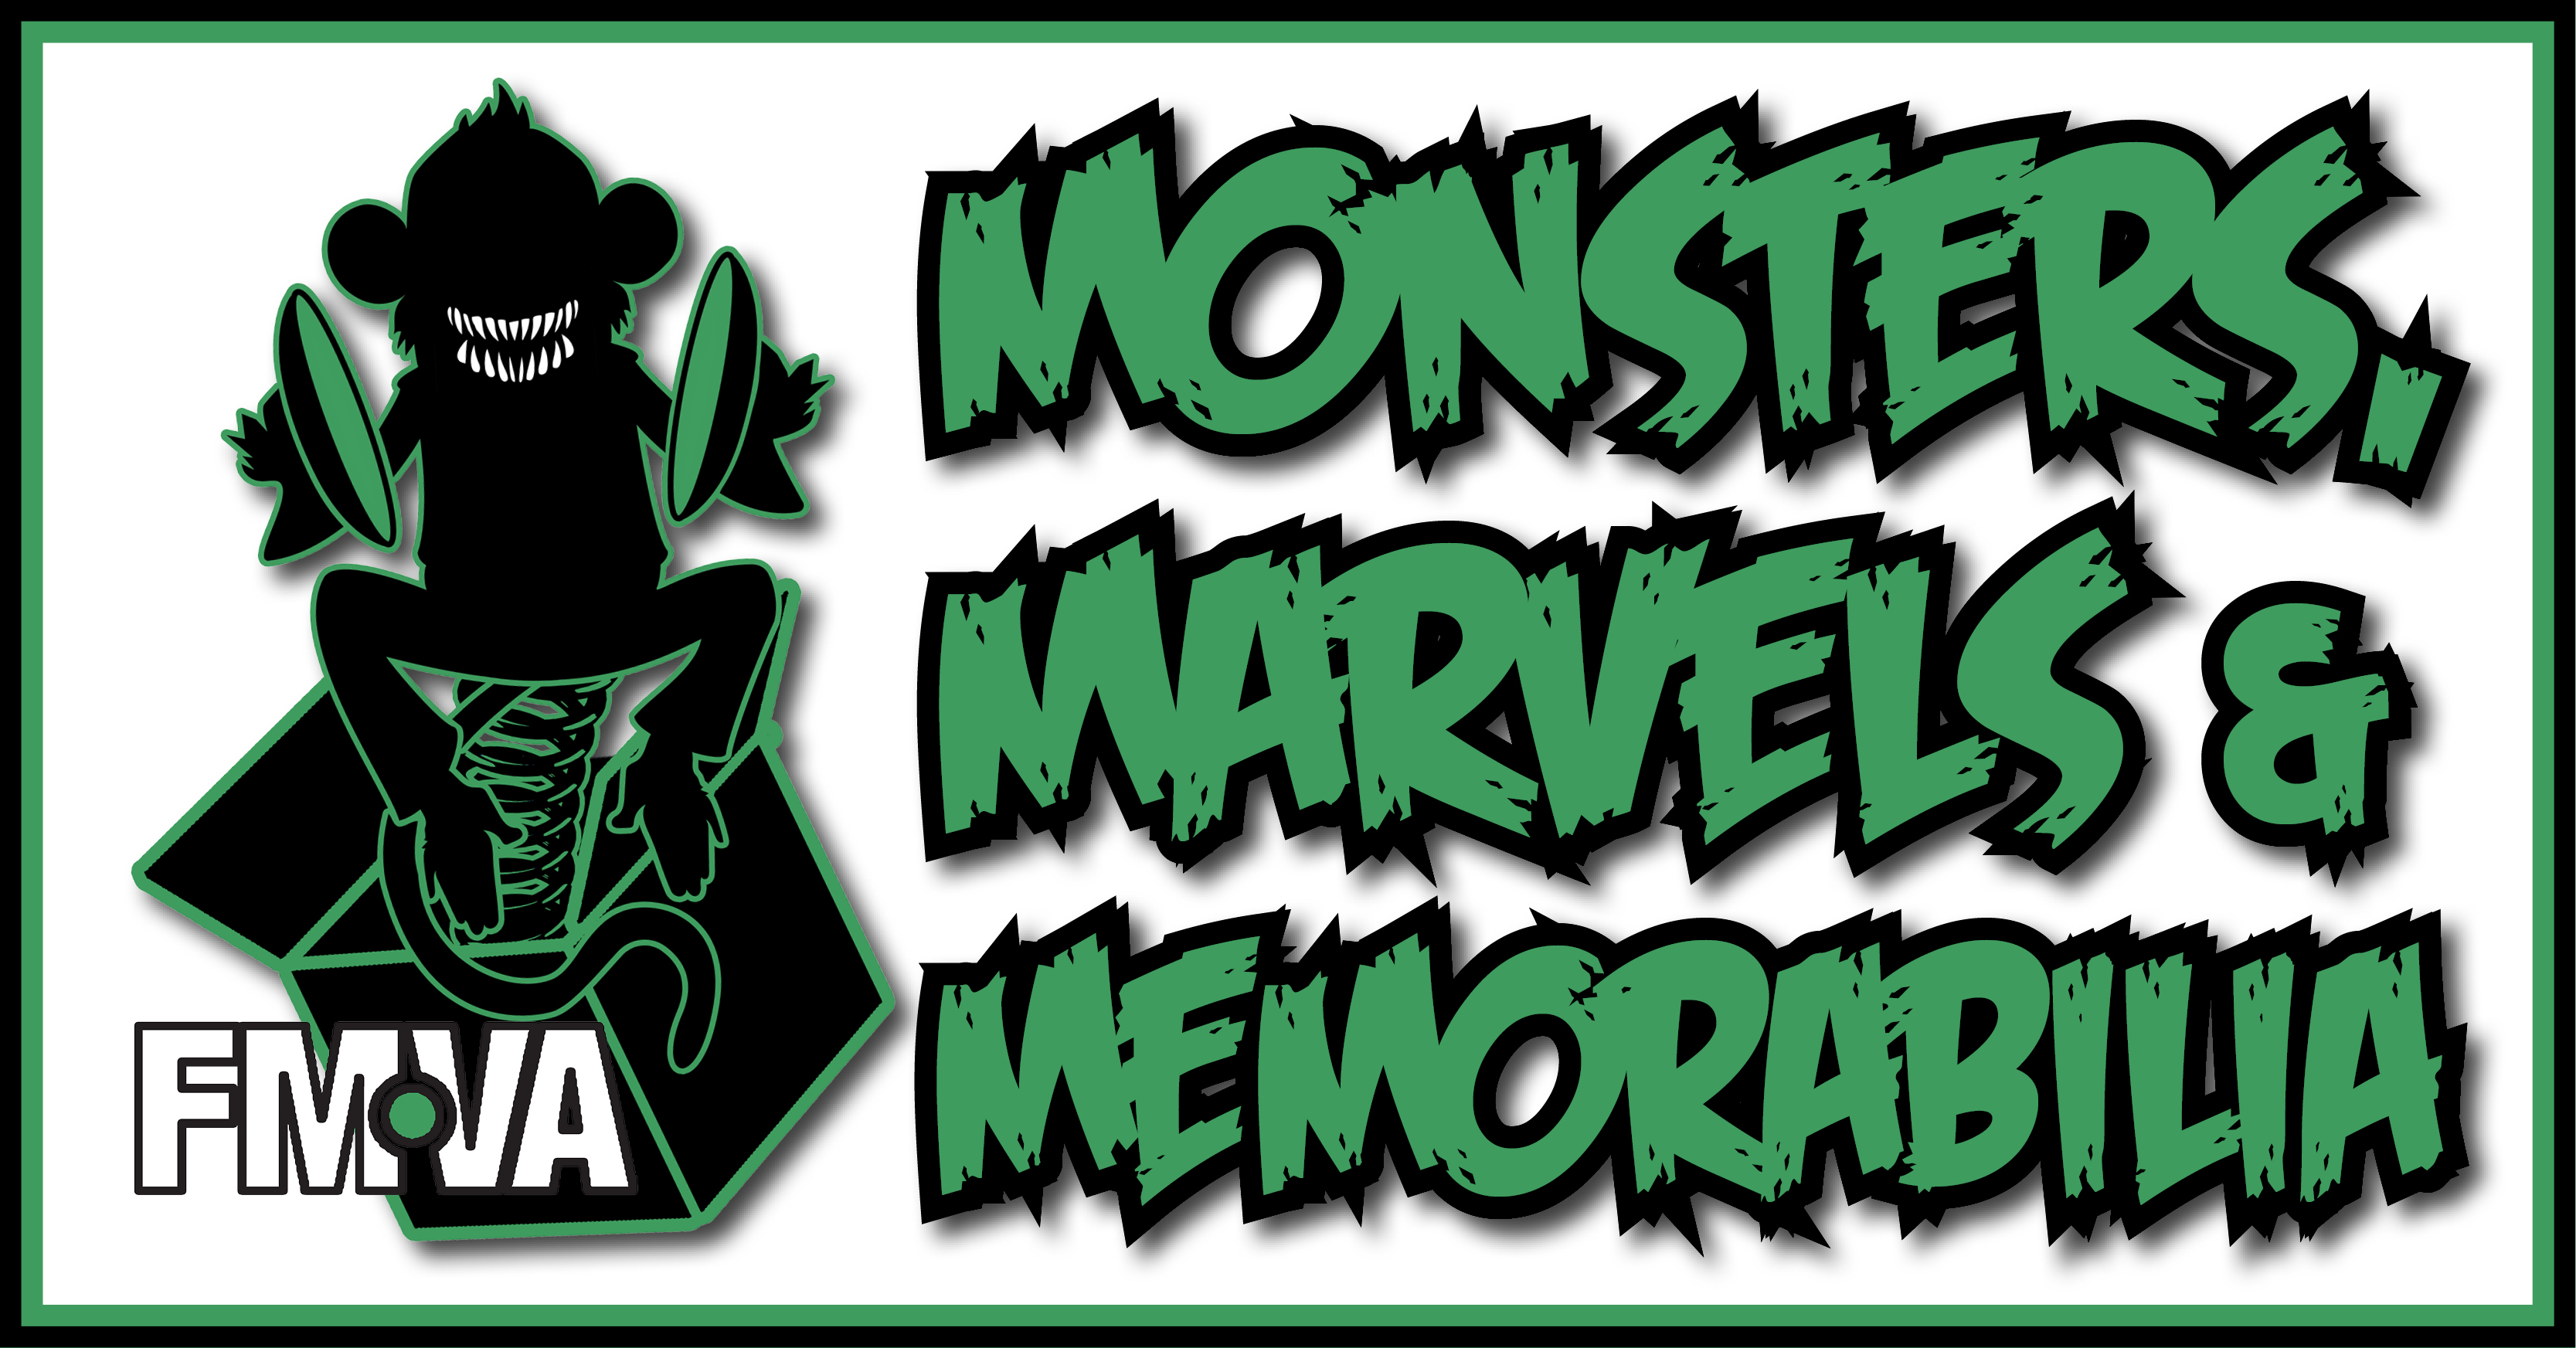 HCSCC_Monsters, Marvels, and Memorabilia_Proof 1_September 3 2019